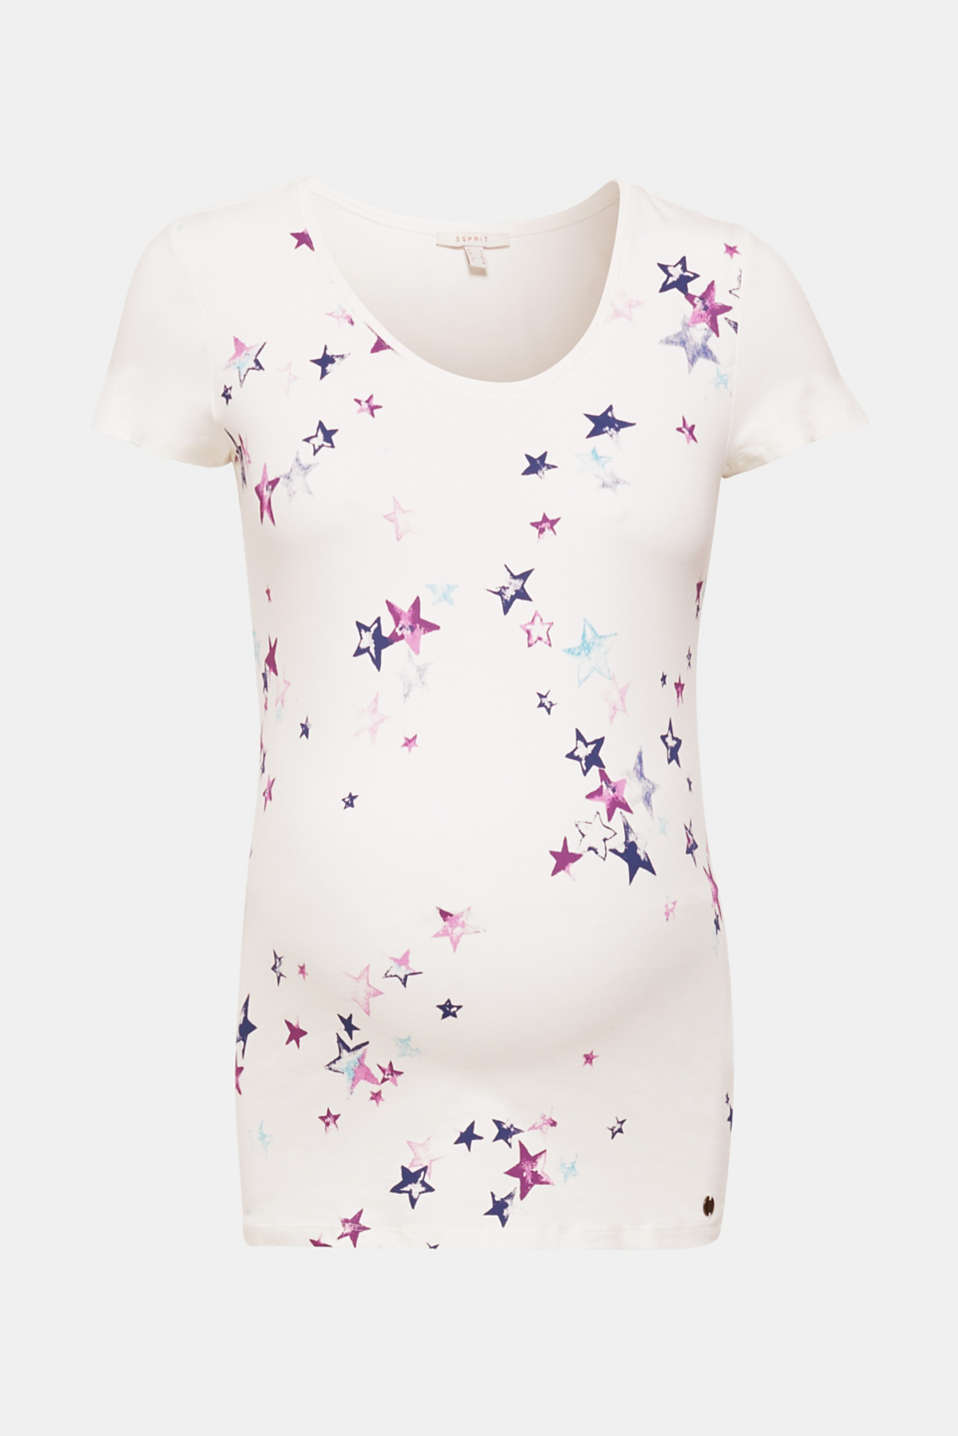 Heavenly highlight for everyday wear: comfy stretch T-shirt with a vintage star print on the front!